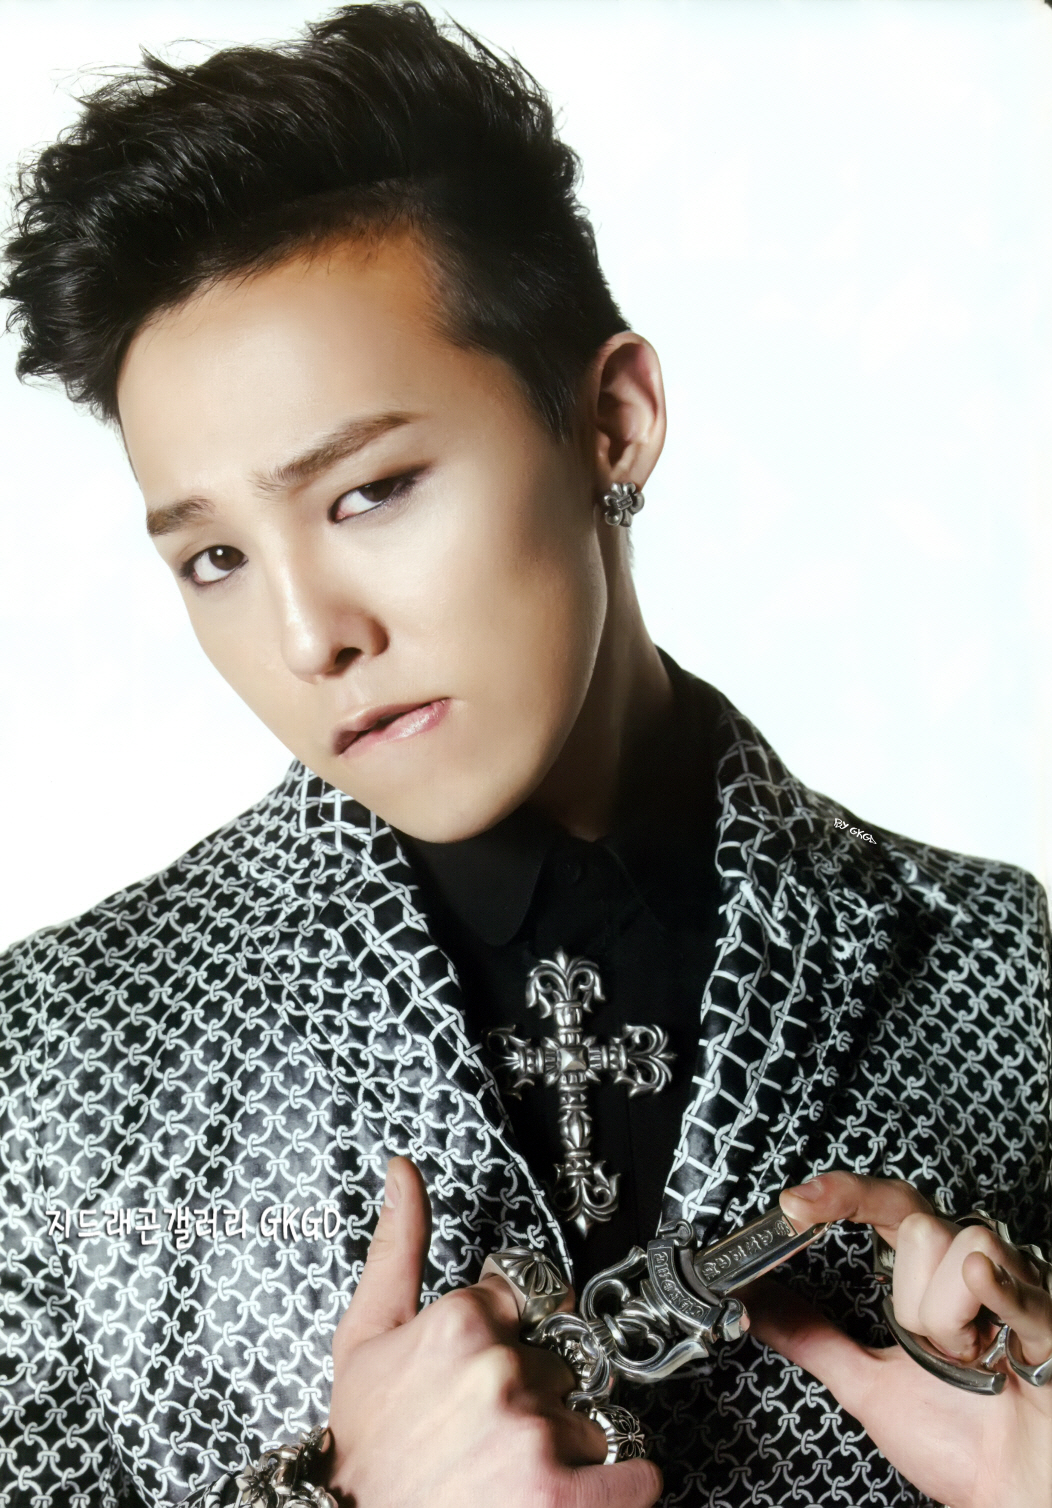 G-Dragon Alive Scans